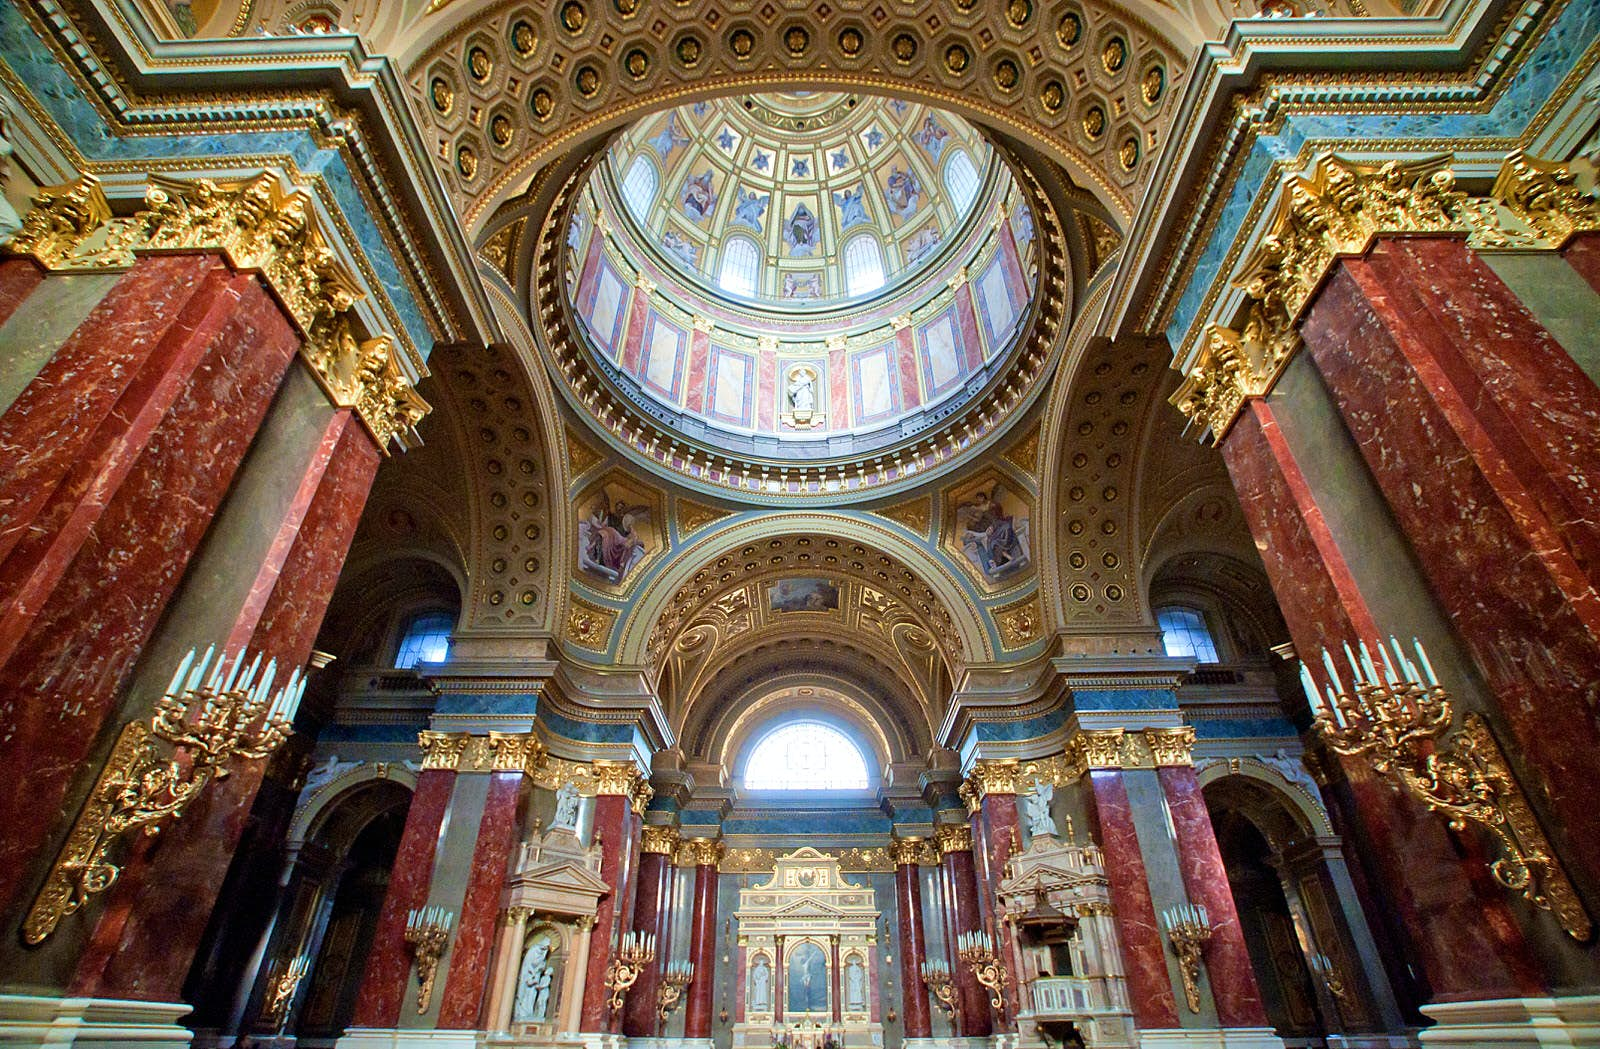 A shot of the ornate interior of the Basilica of St Stephen, showing the red walls, large dome and gold alter among other grand furnishings